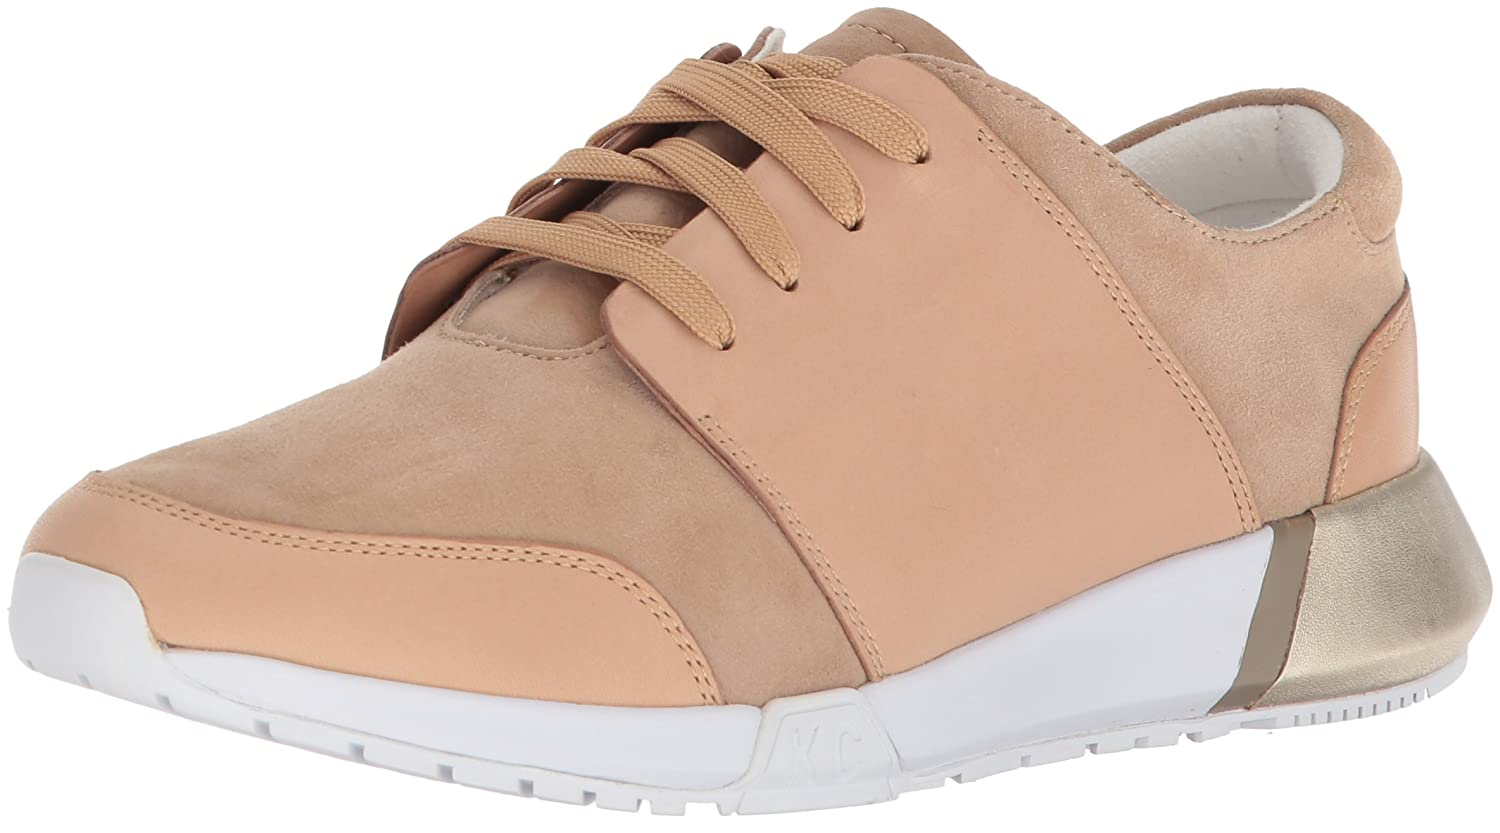 Kenneth Cole New York Women's Sumner Lace-up Jogger Sneaker B0794Y69FR 7.5 B(M) US|Café